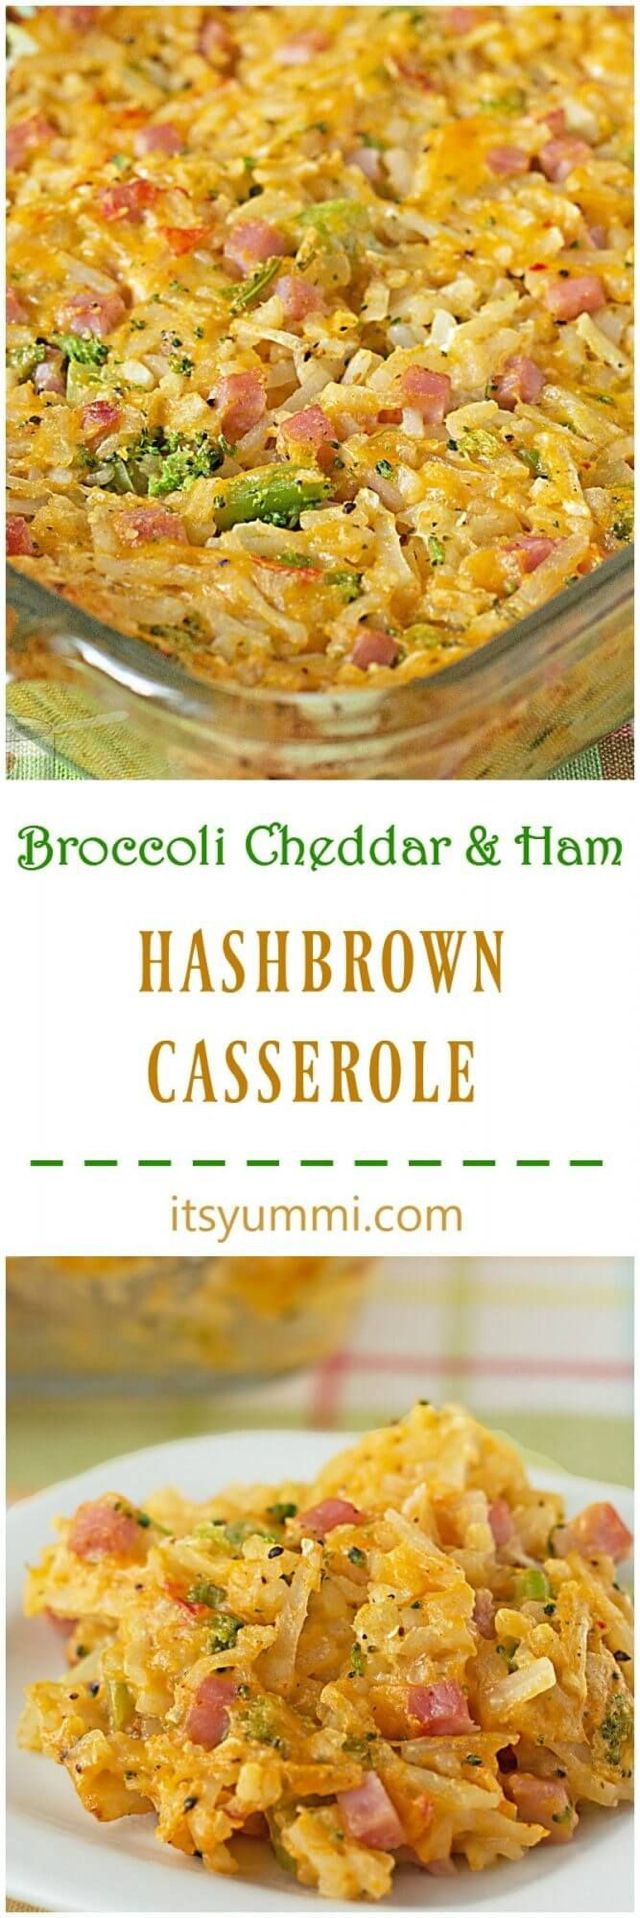 Broccoli Cheddar 'n Ham Hashbrown Casserole - Shredded Hash Browns, ham, and cheddar cheese are baked up together in this kid friendly, quick, and easy dinner recipe from @itsyummi